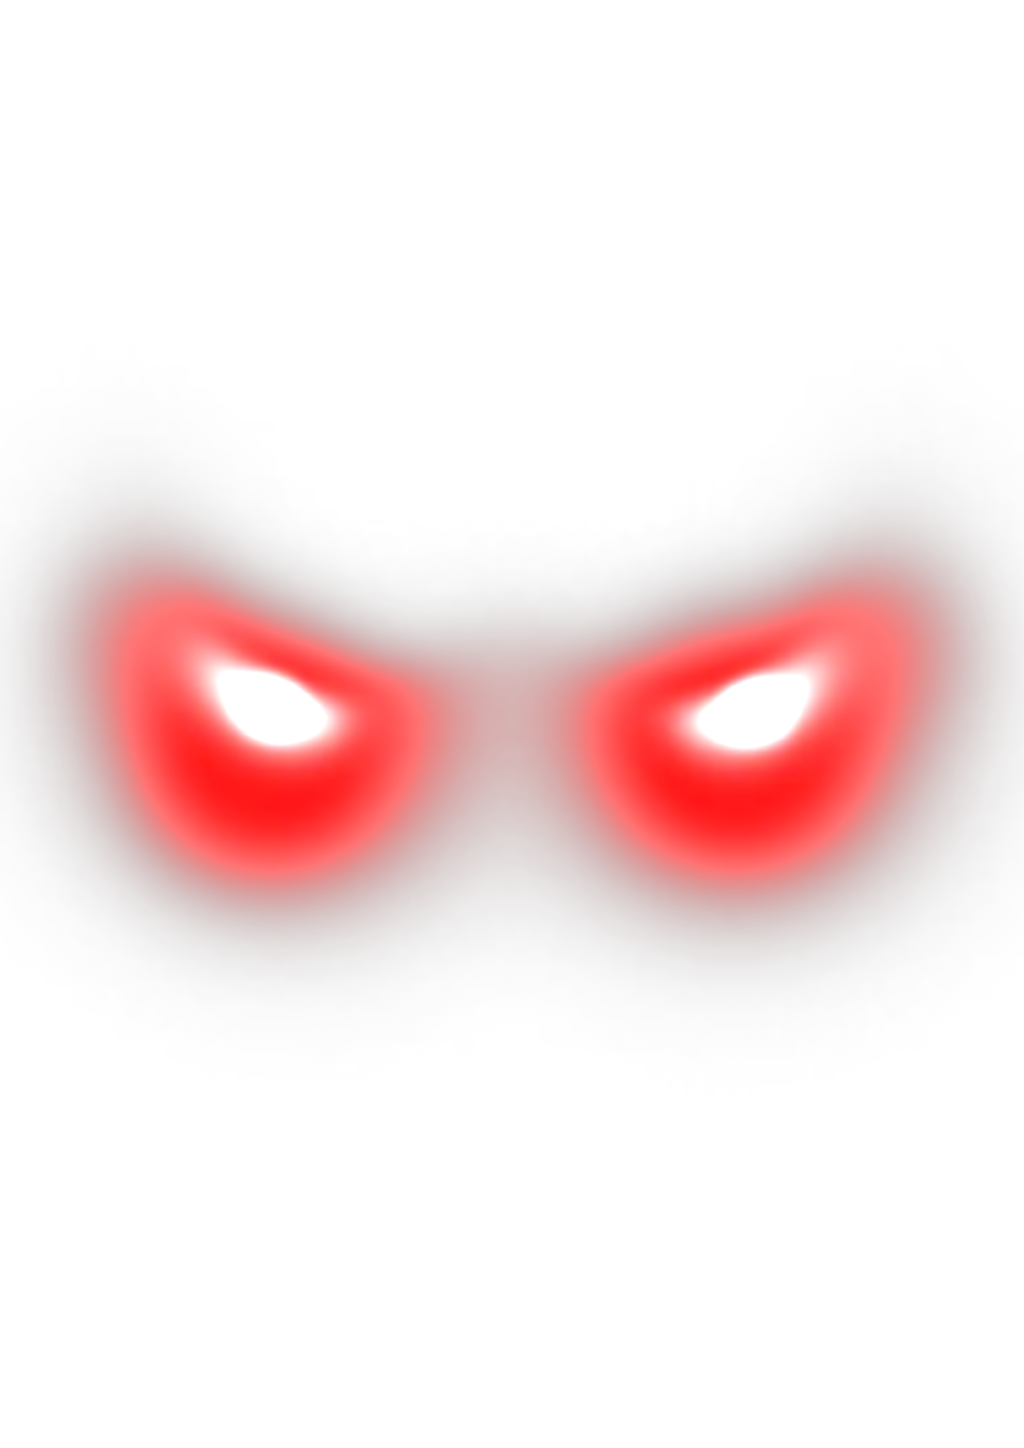 Eye glow meme png. Glowing eyes images in